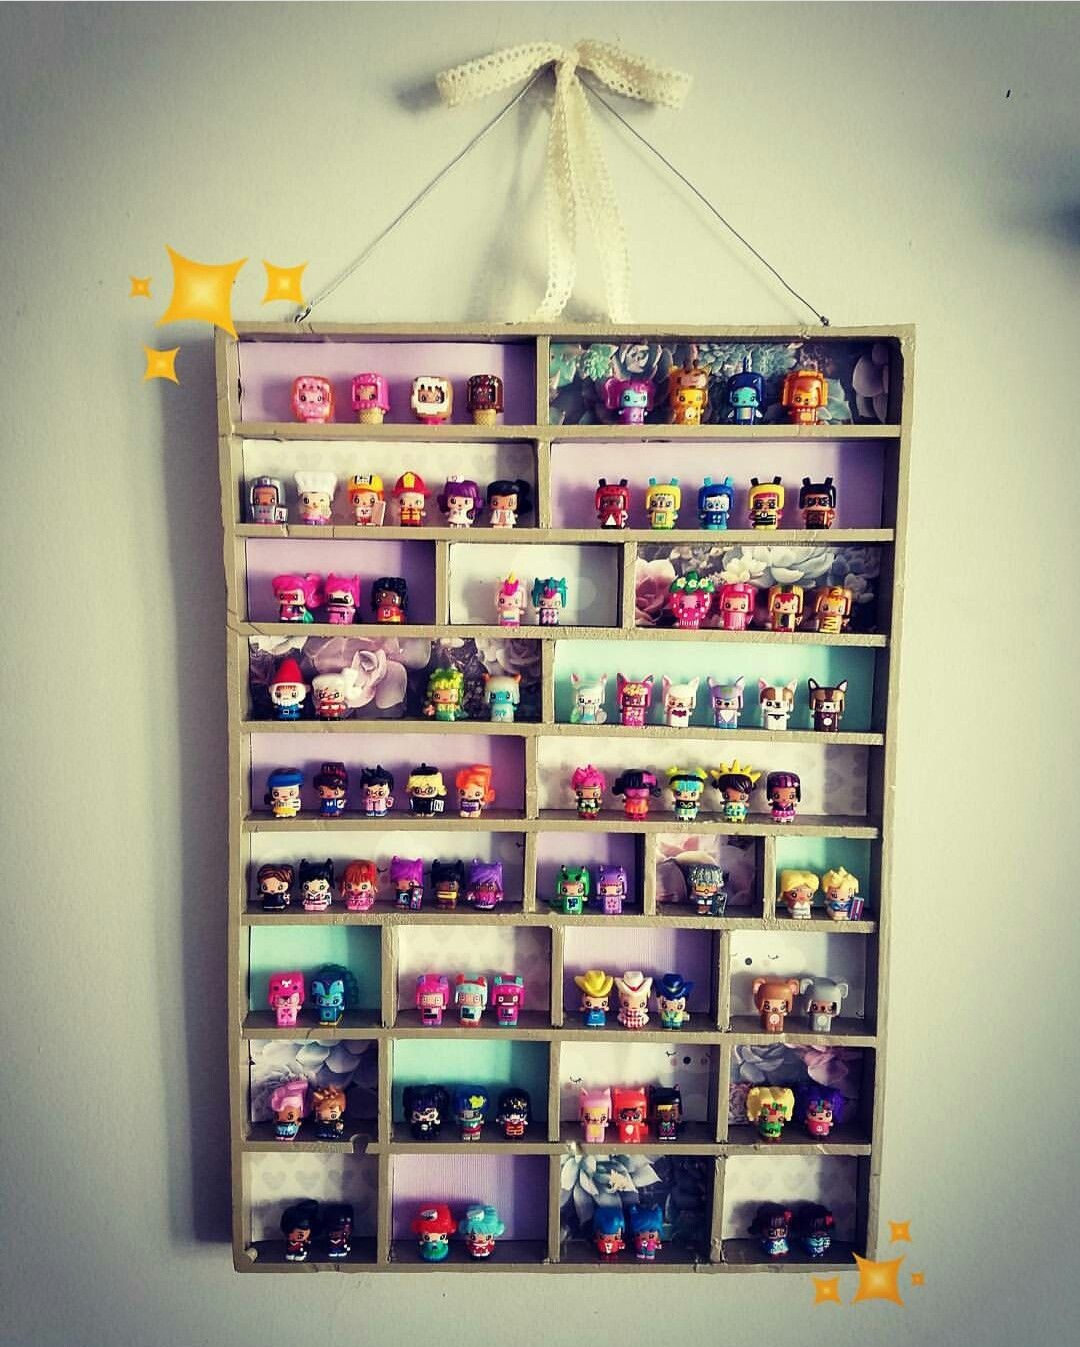 Hanging cute diy wall display case storage for my mini mixieqs